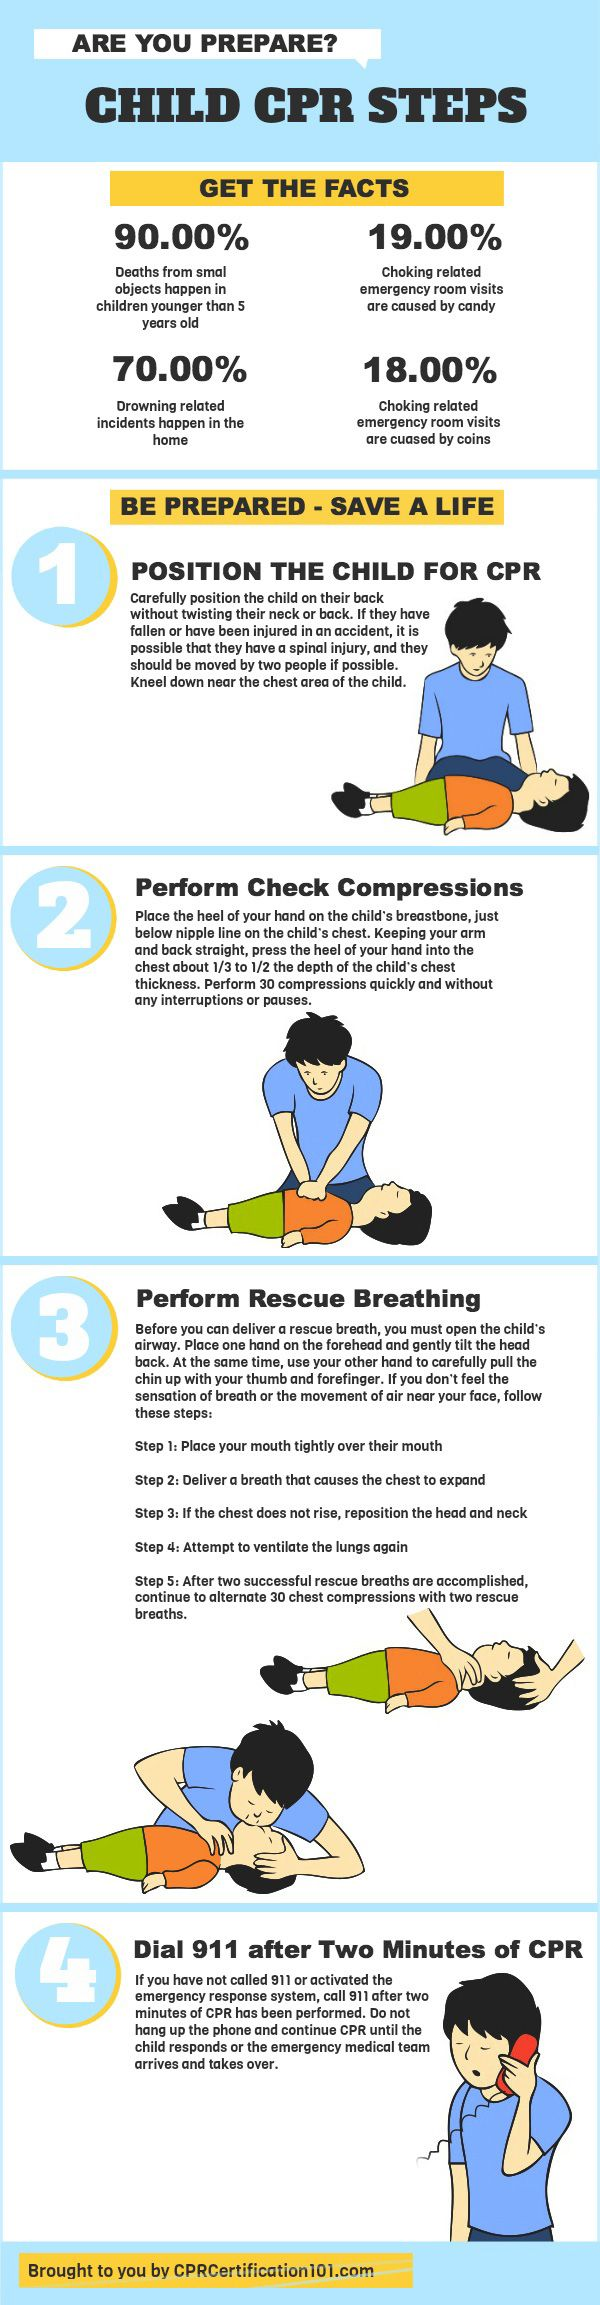 #INFOgraphic > Children CPR Instructions: Children are prone to accidents and as a parent you need to be prepared for emergency situations. Learning how to perform CPR on your child is extremely important because there are only a few minutes between life or death. Dont wait until its too late.  > http://infographicsmania.com/children-cpr-instructions/